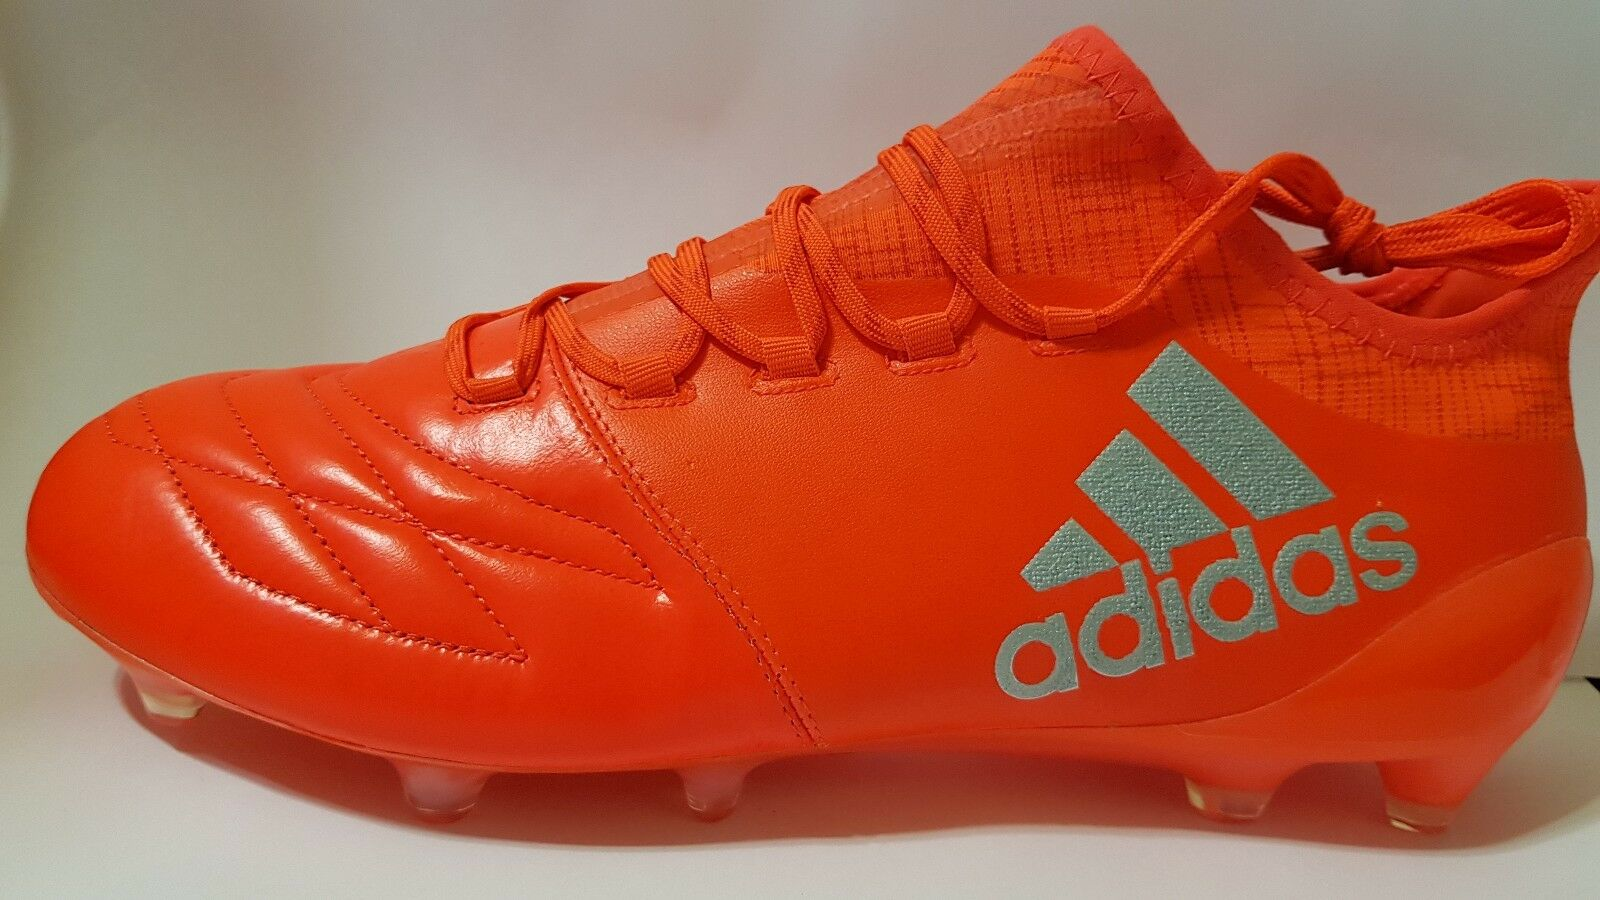 Adidas Men's Football shoes X16.1 FG Leather S81966